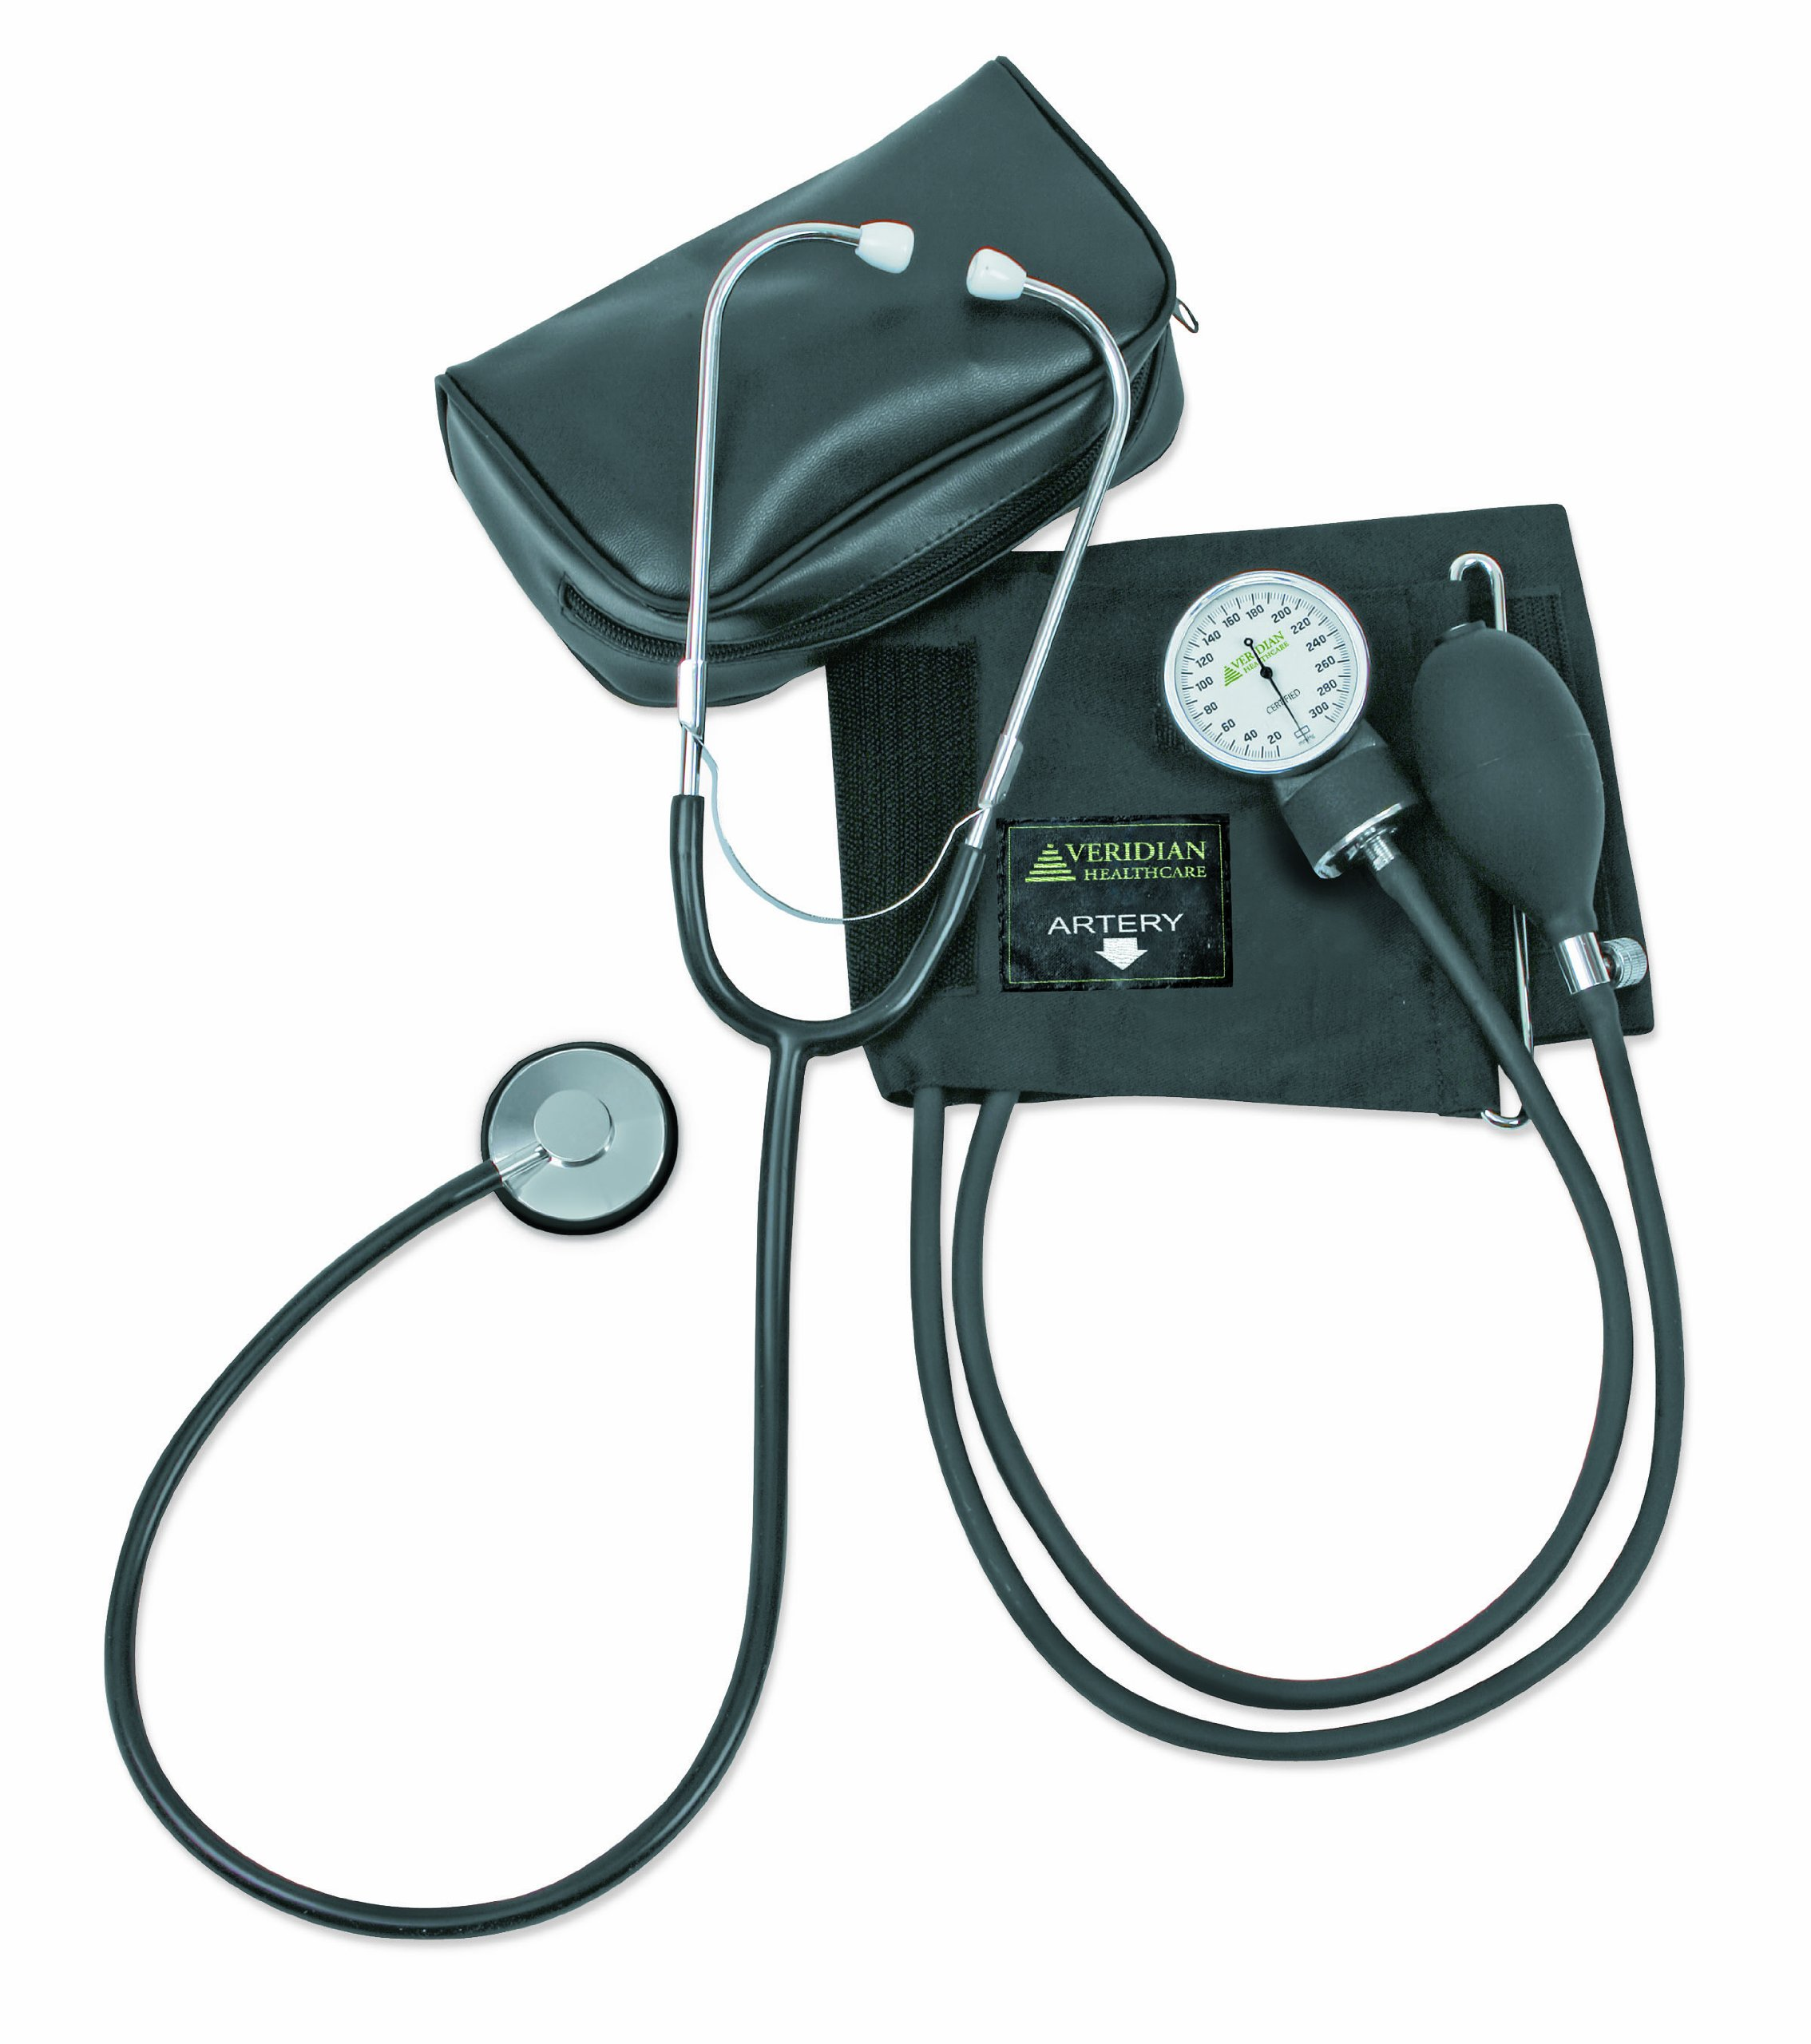 Veridian 01 5521 Two party Pressure Stethoscope